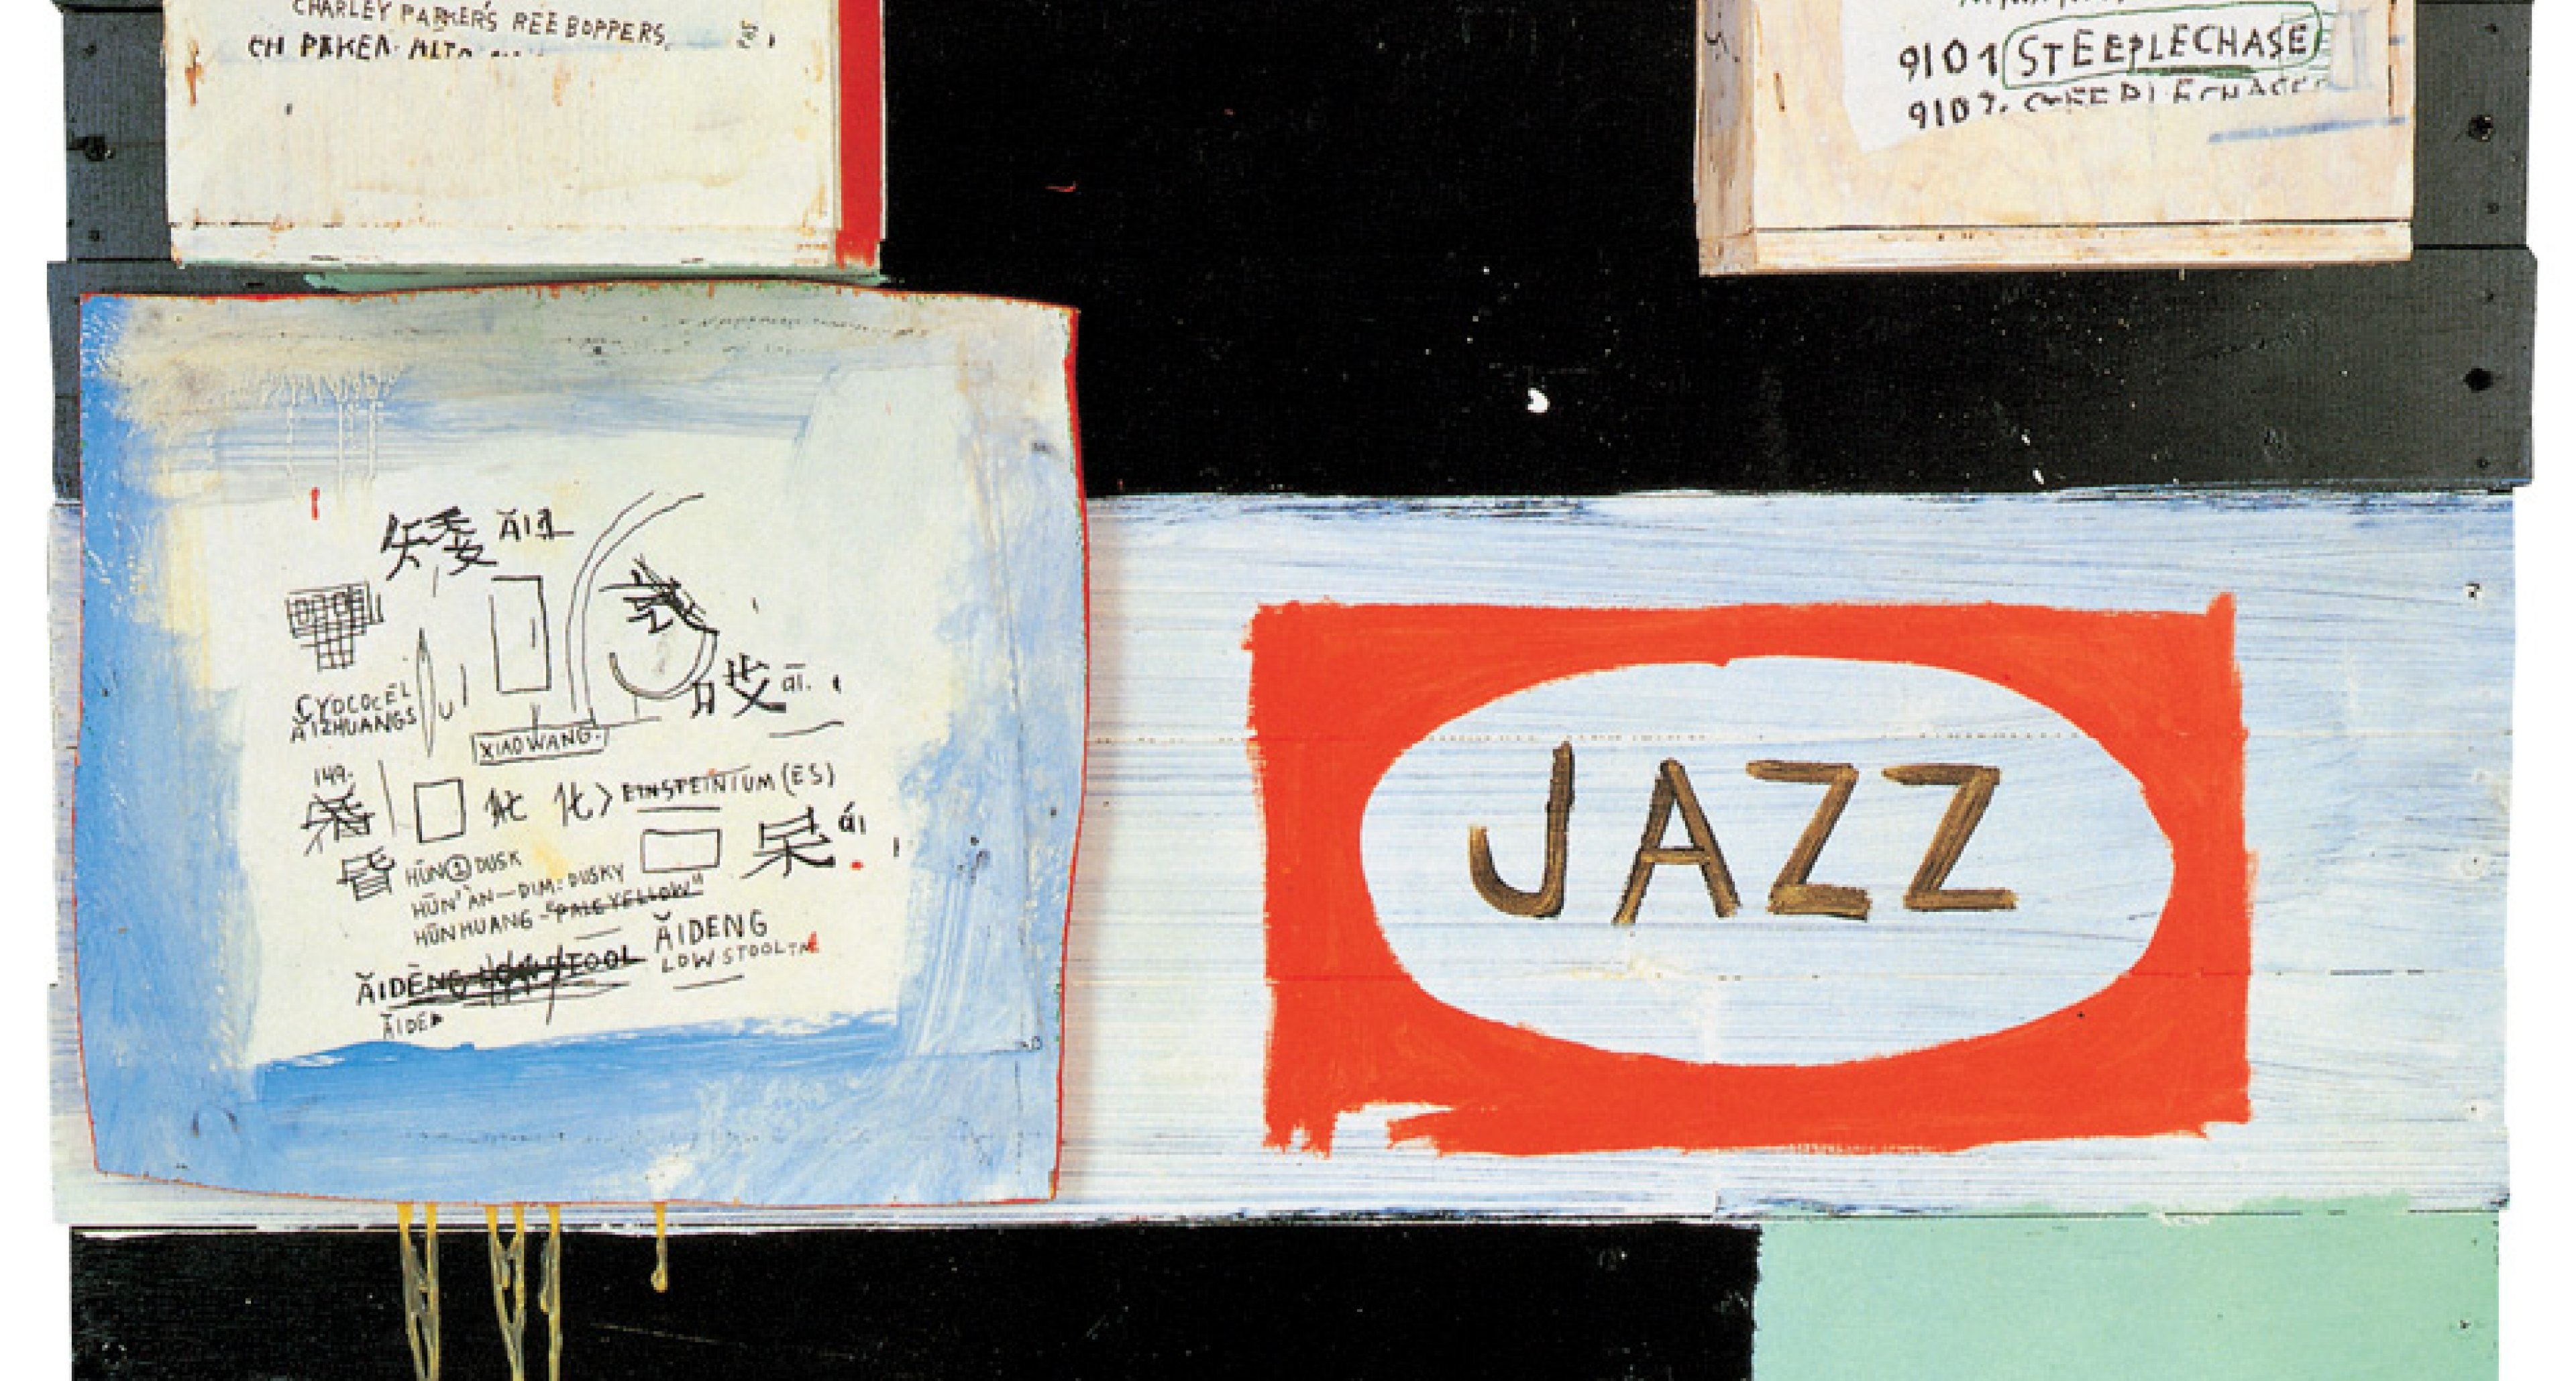 Jean-Michel Basquiat, Jazz, 1986